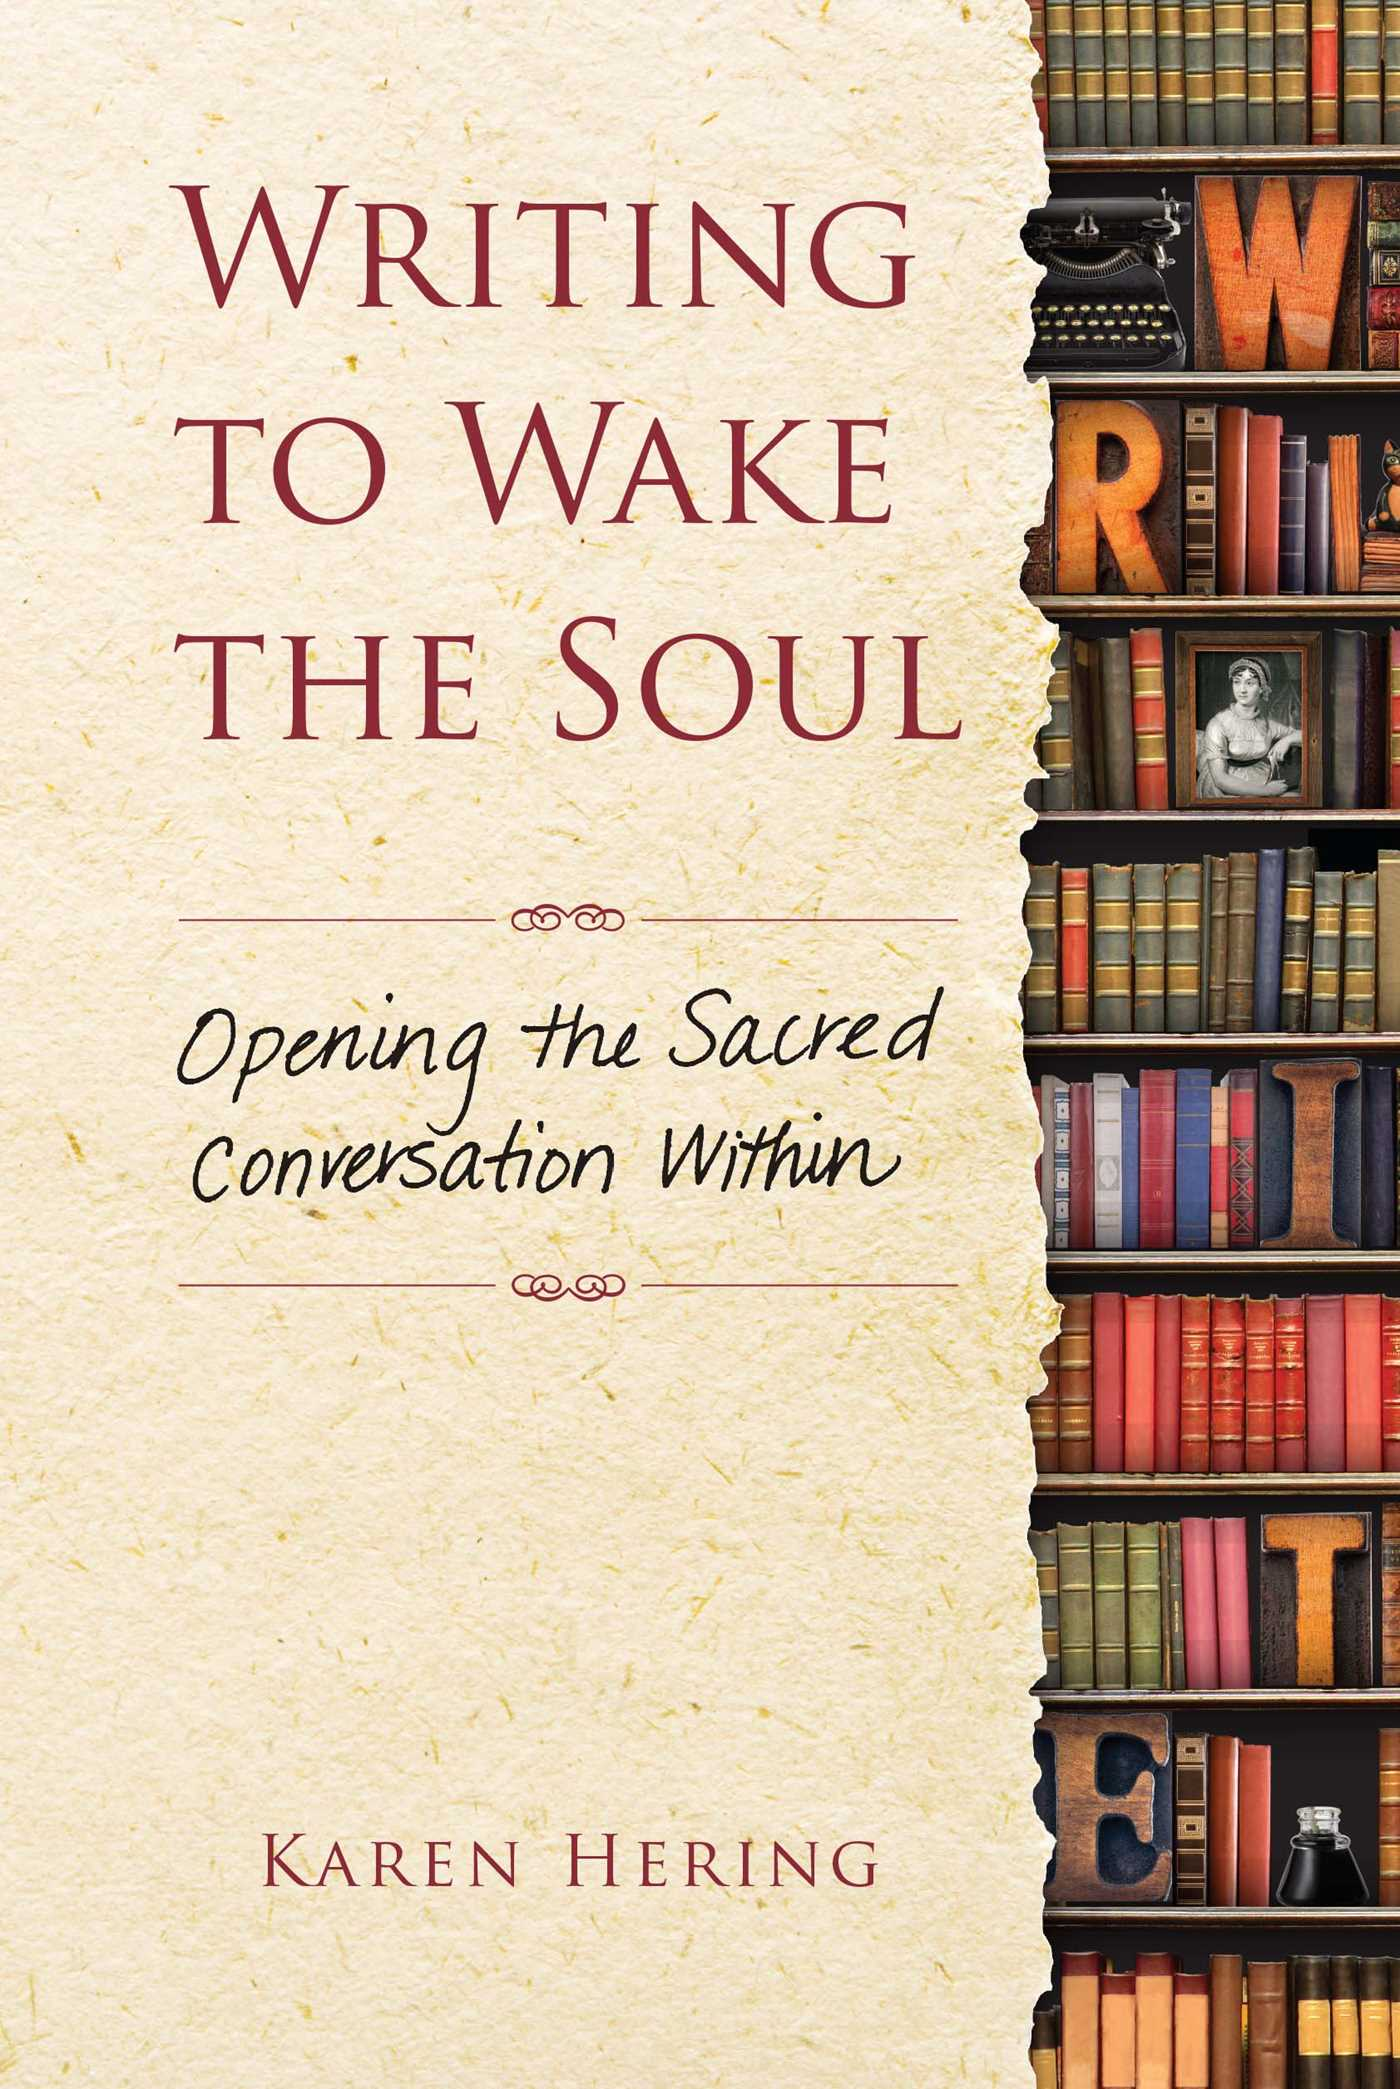 Writing-to-wake-the-soul-9781476706610_hr